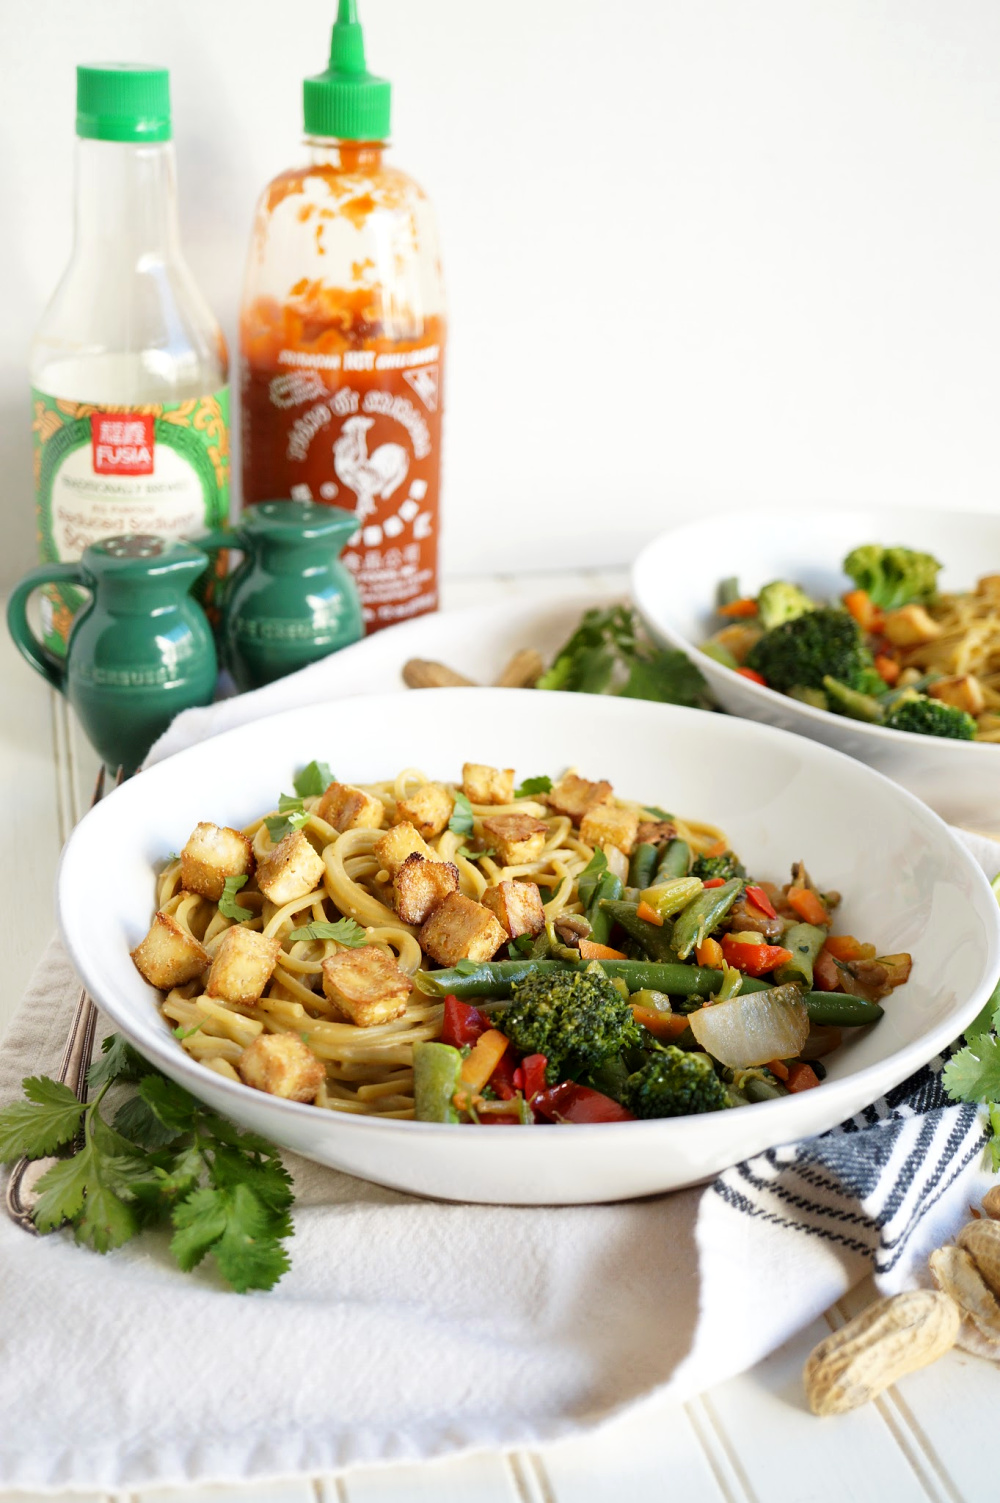 plate of peanut noodles with vegetable stir fry